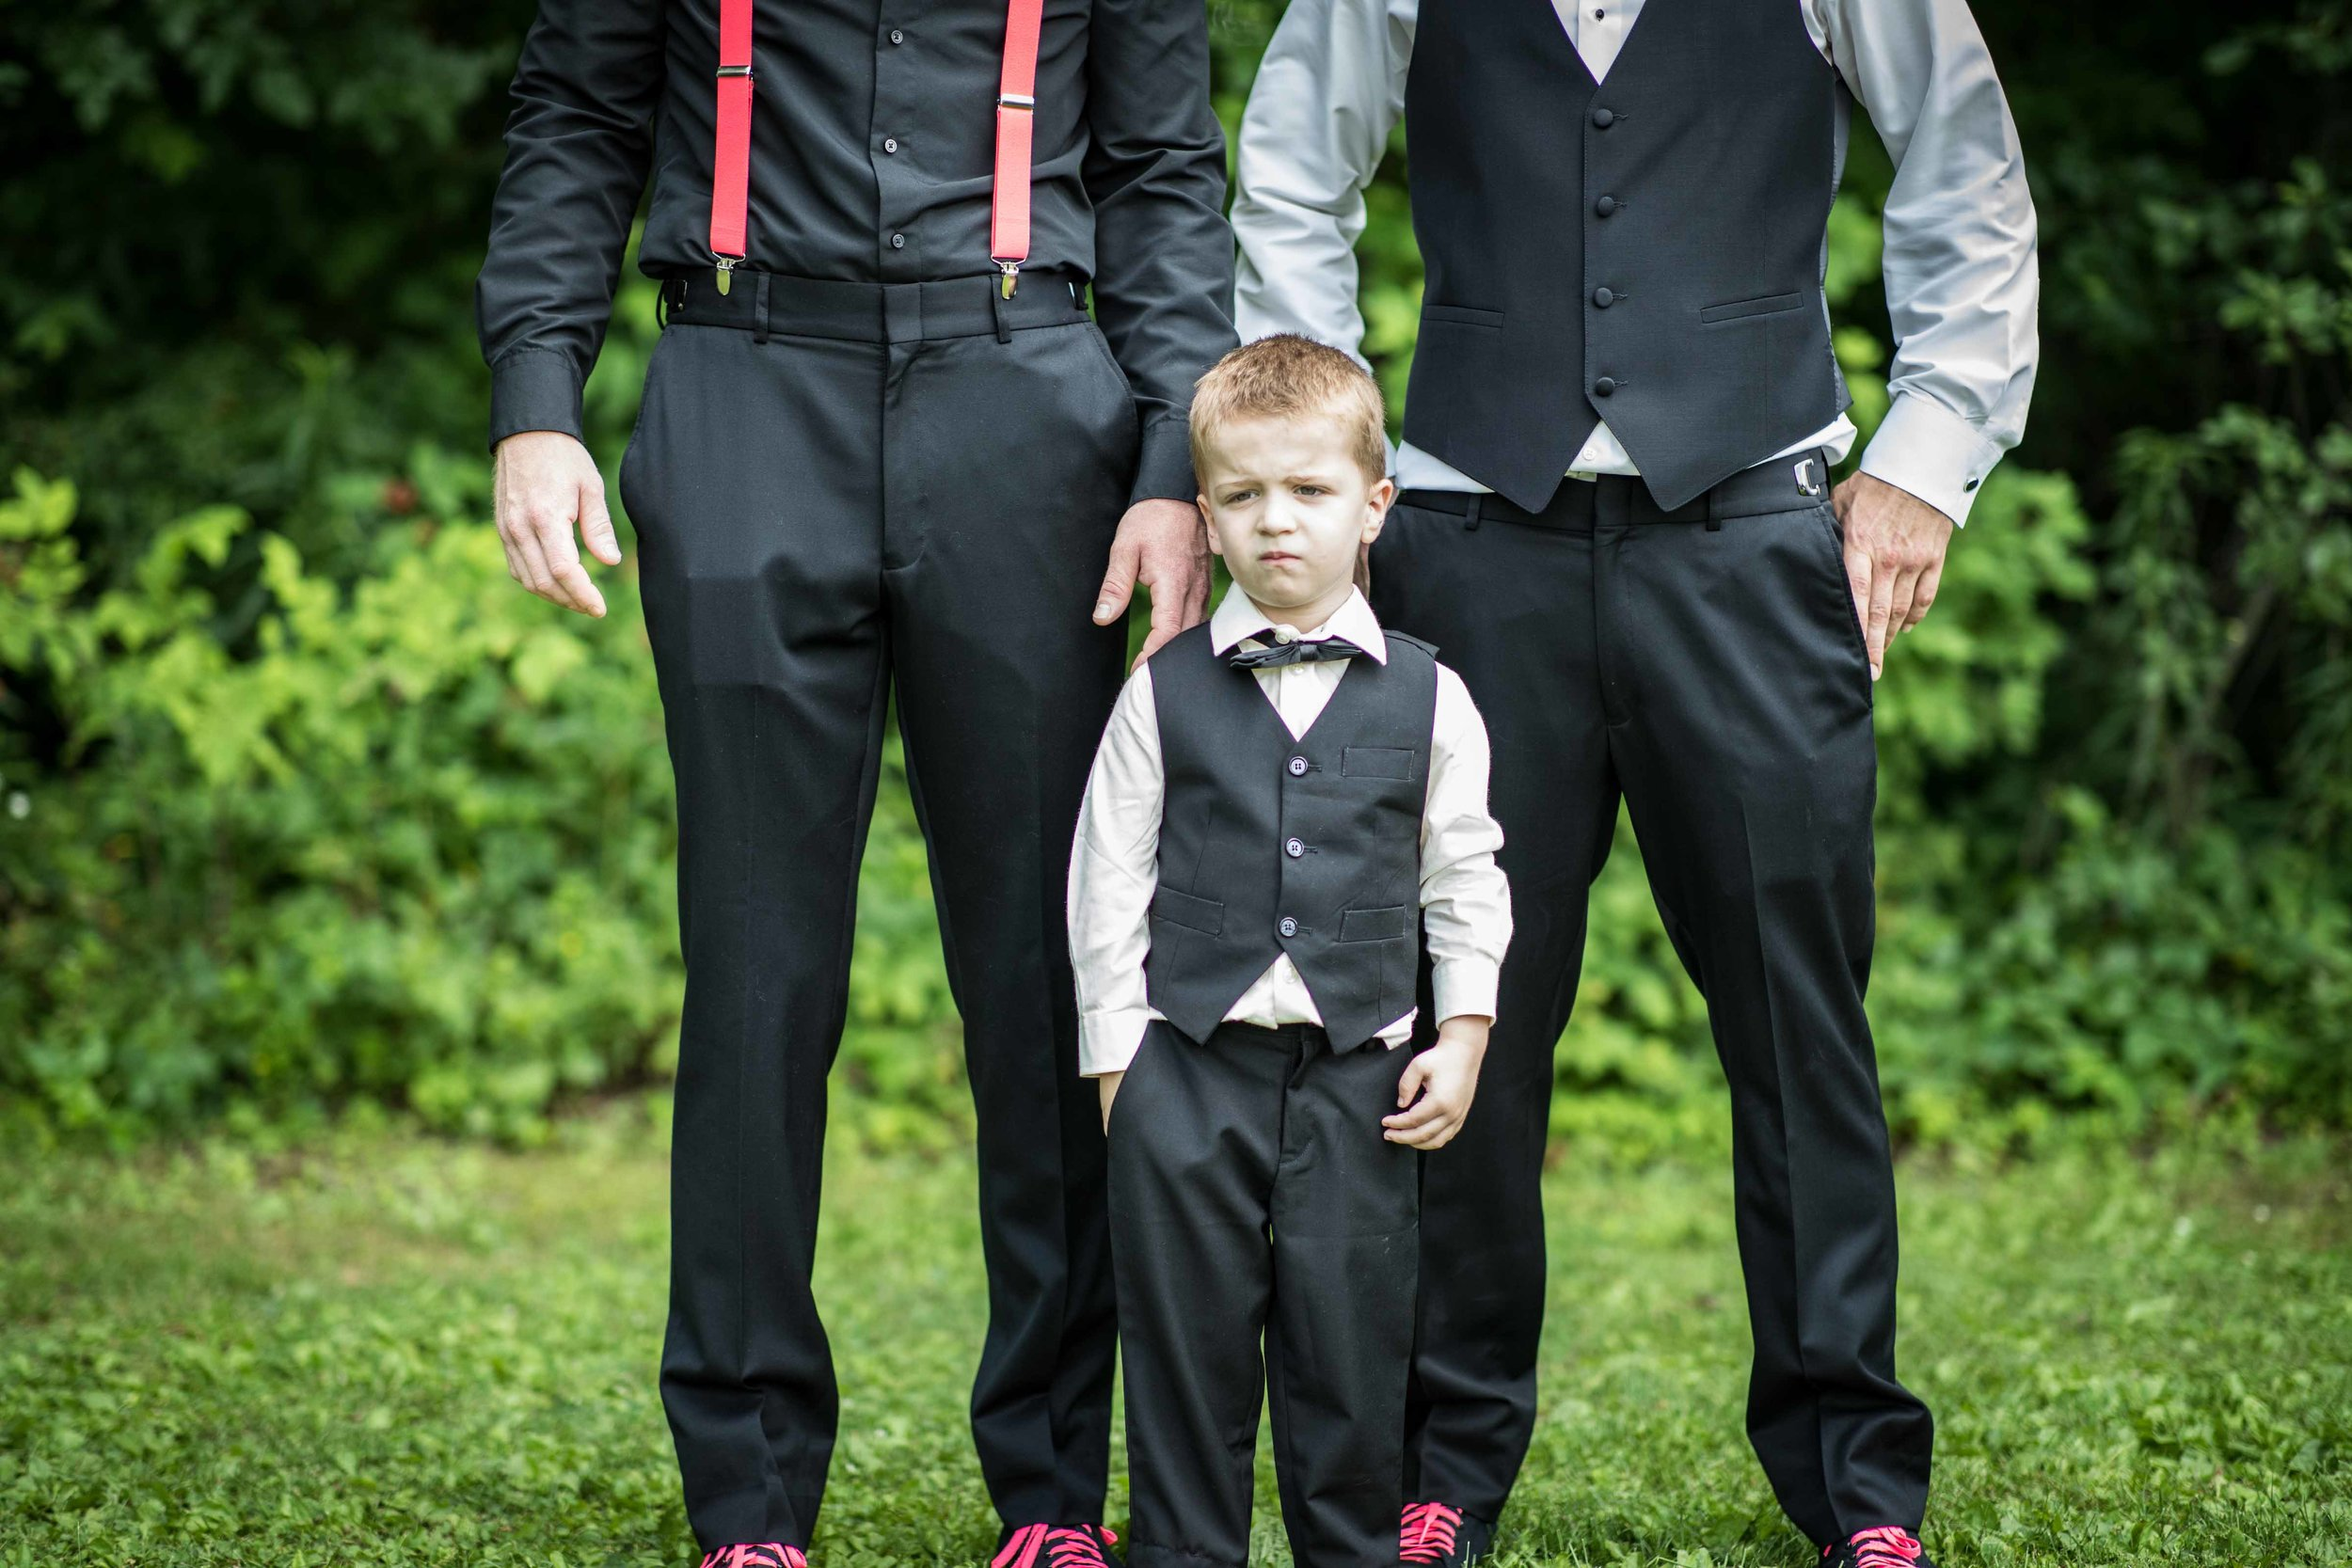 The shy ring bearer finally poses for a photo